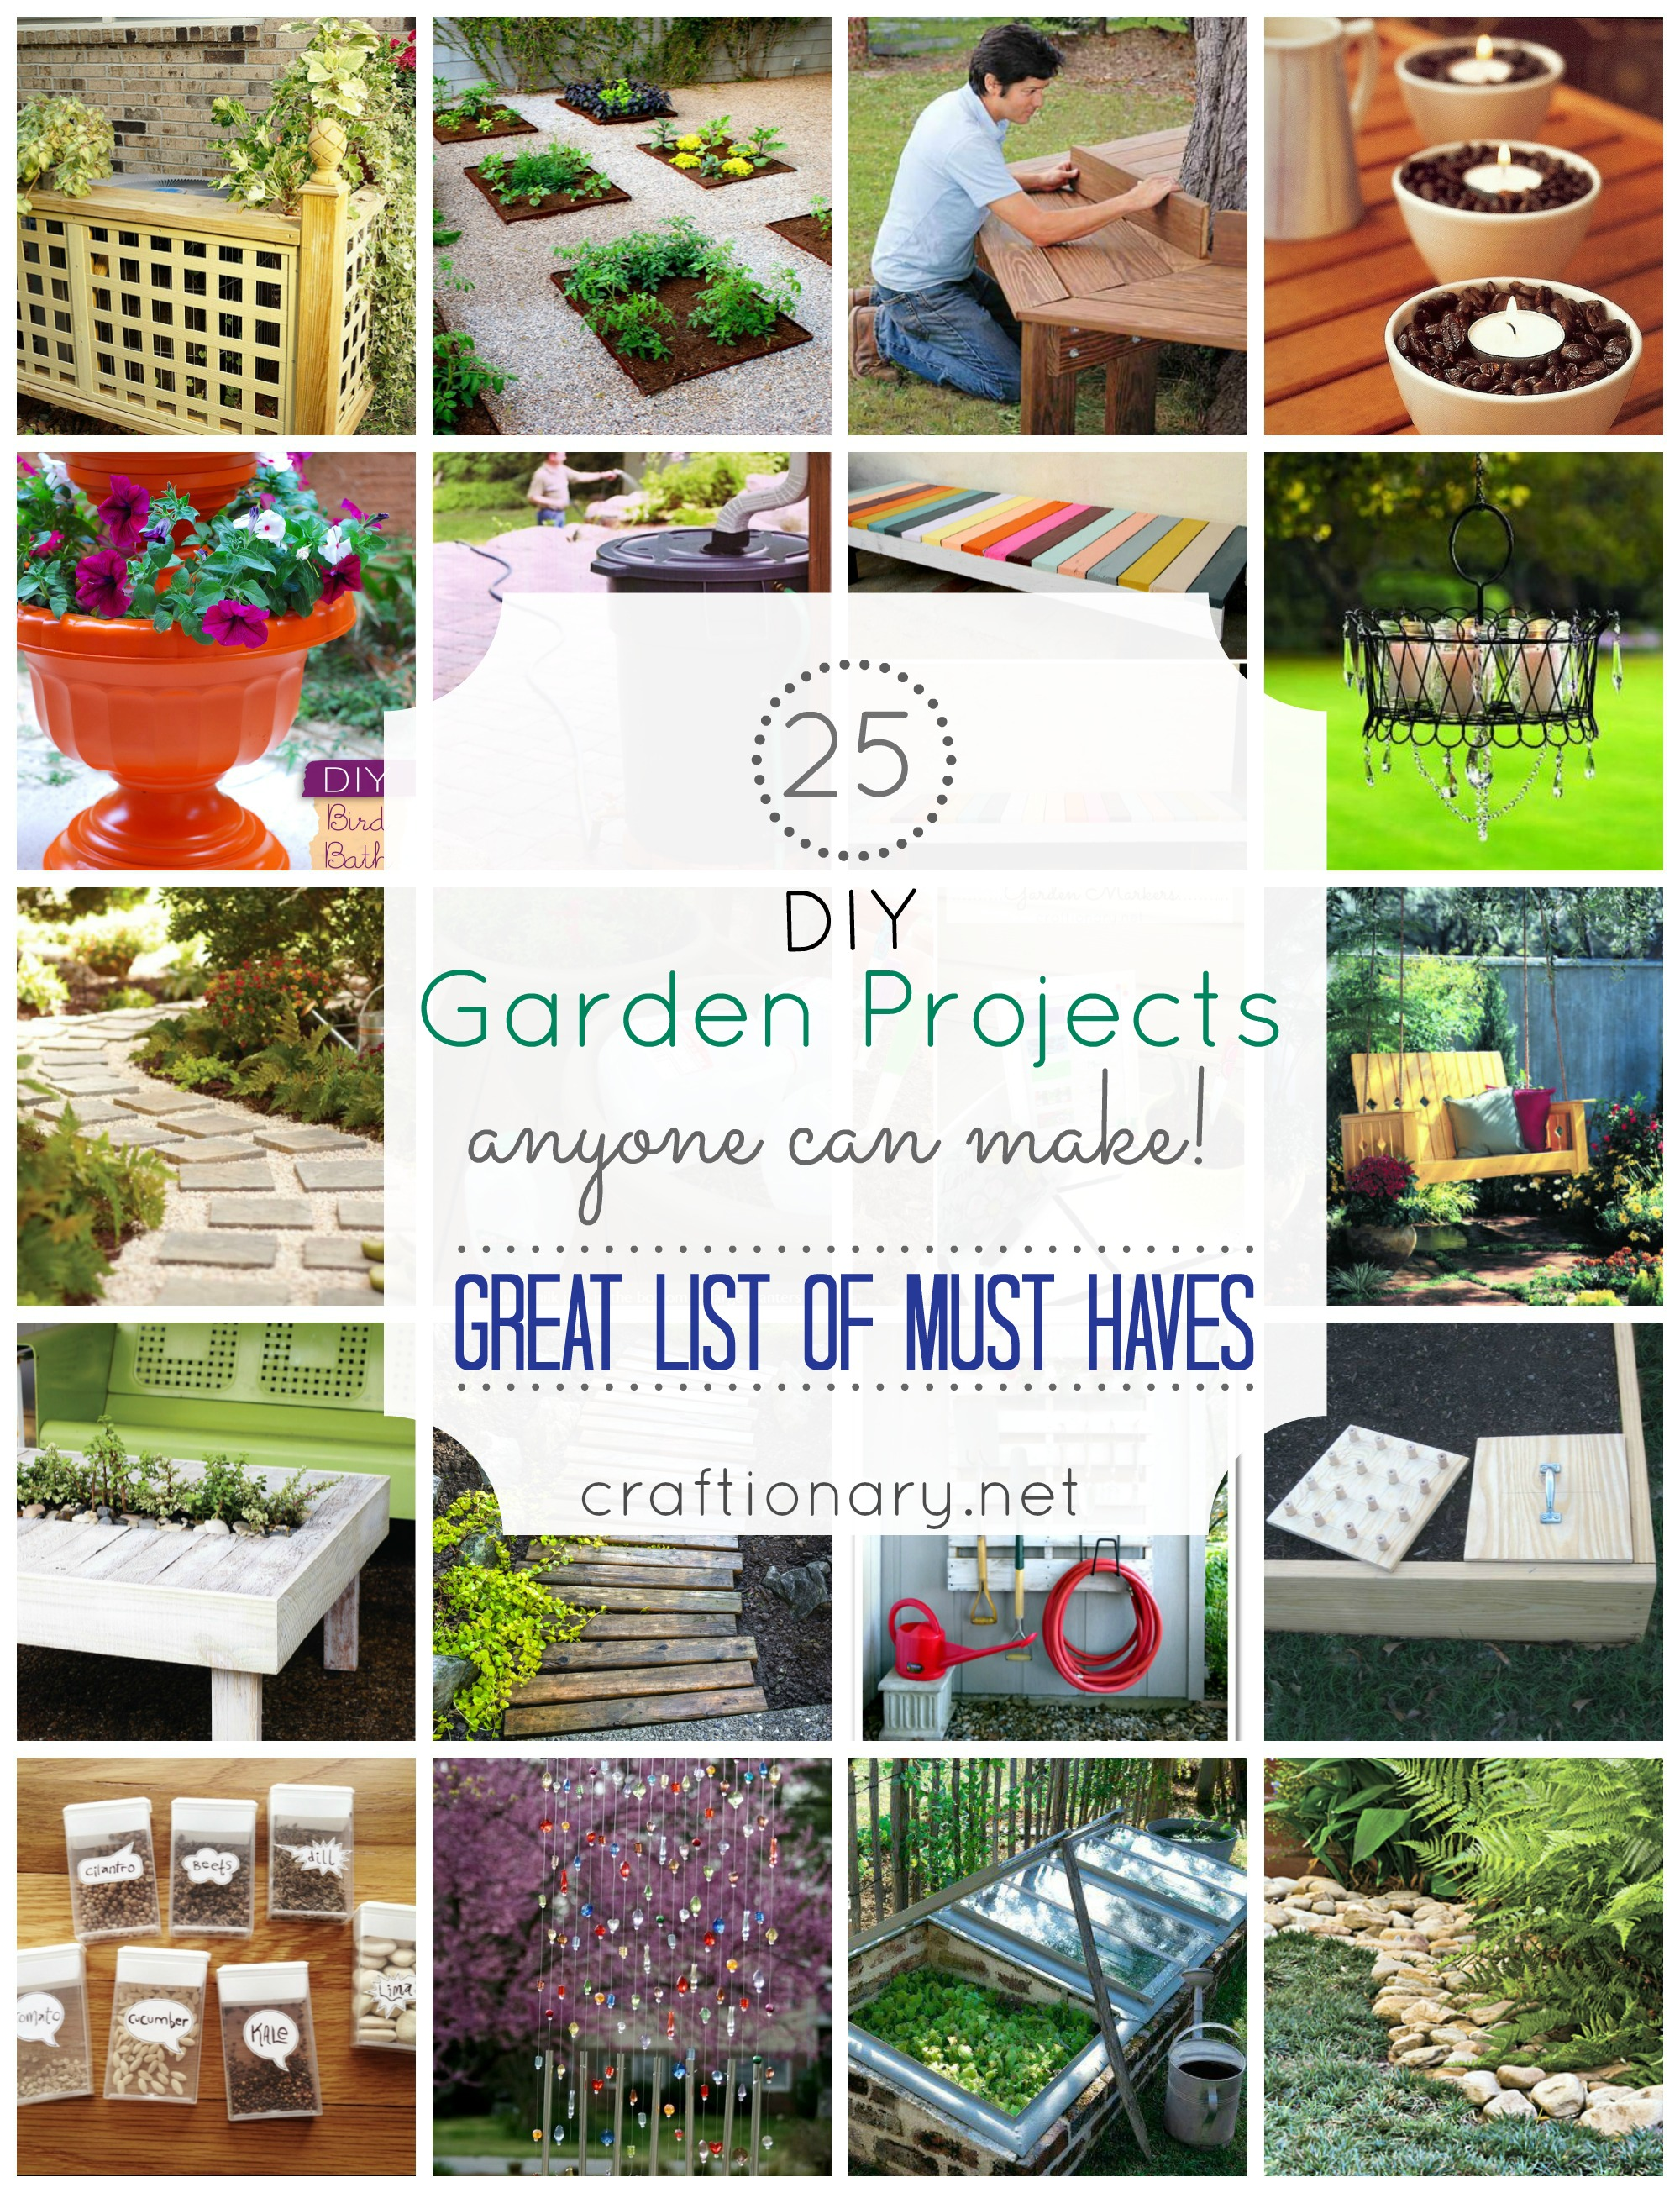 Craftionary diy garden projects solutioingenieria Image collections